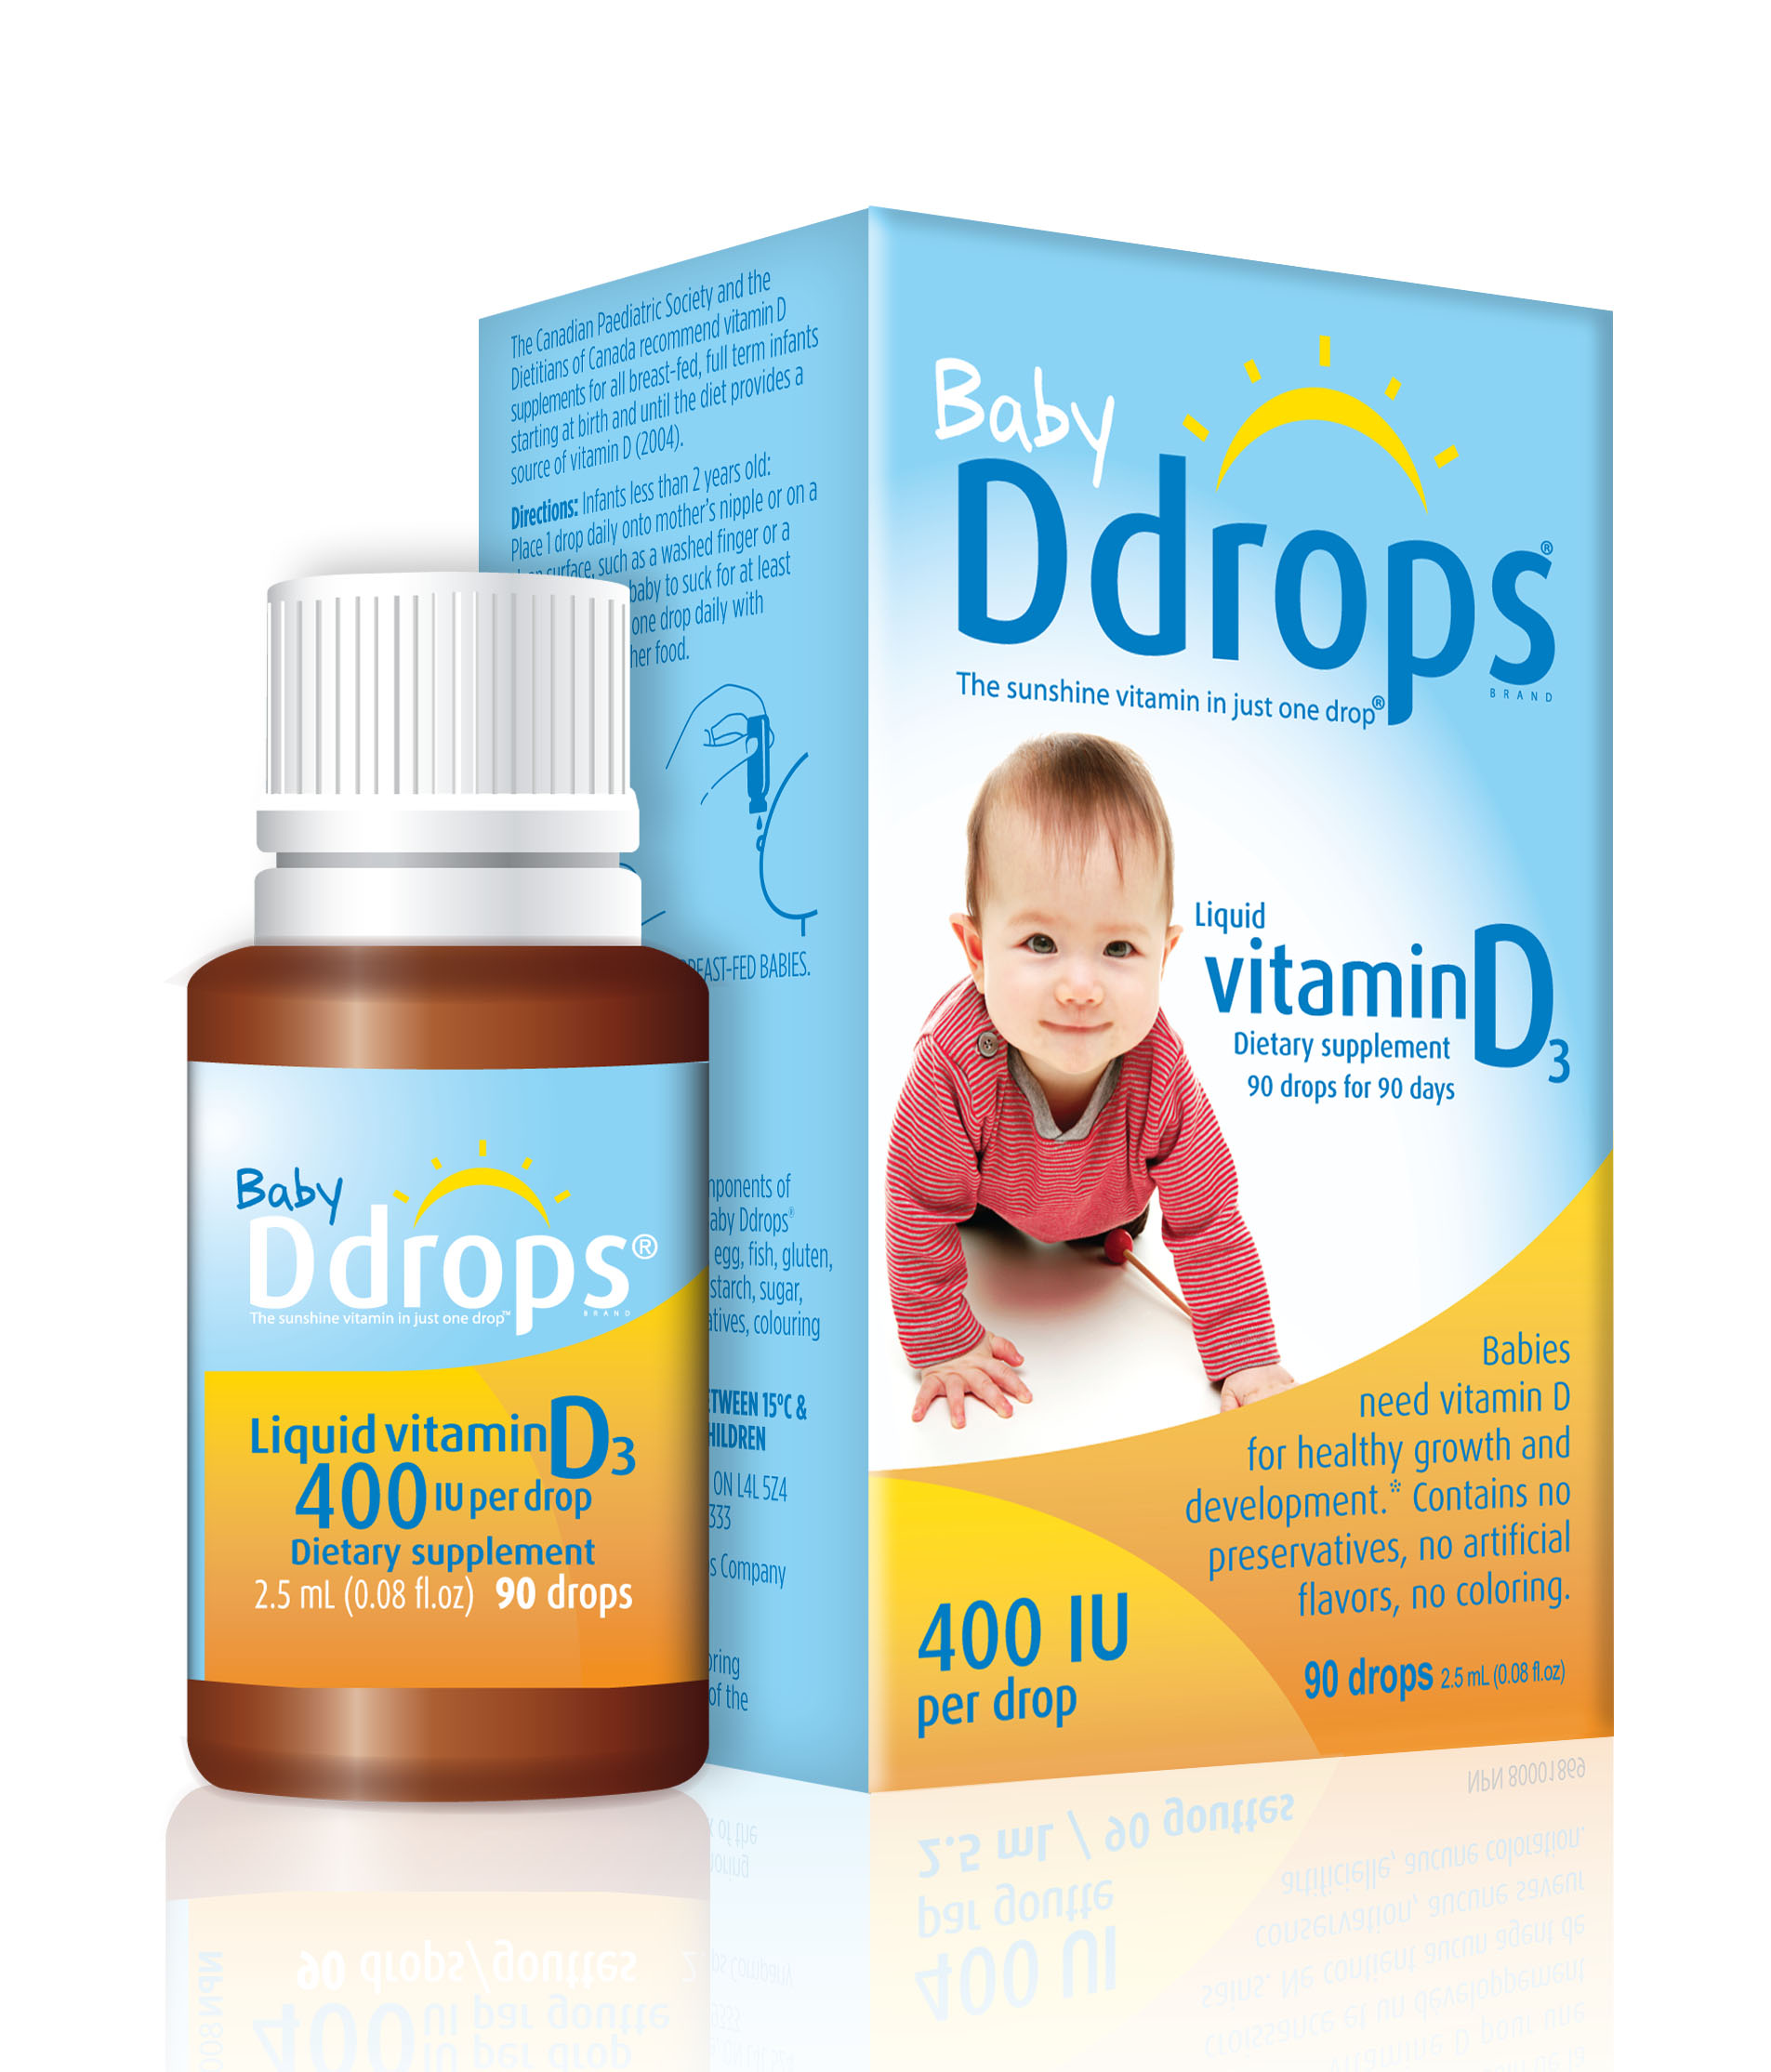 Vitamin D for babies. Need or not 90